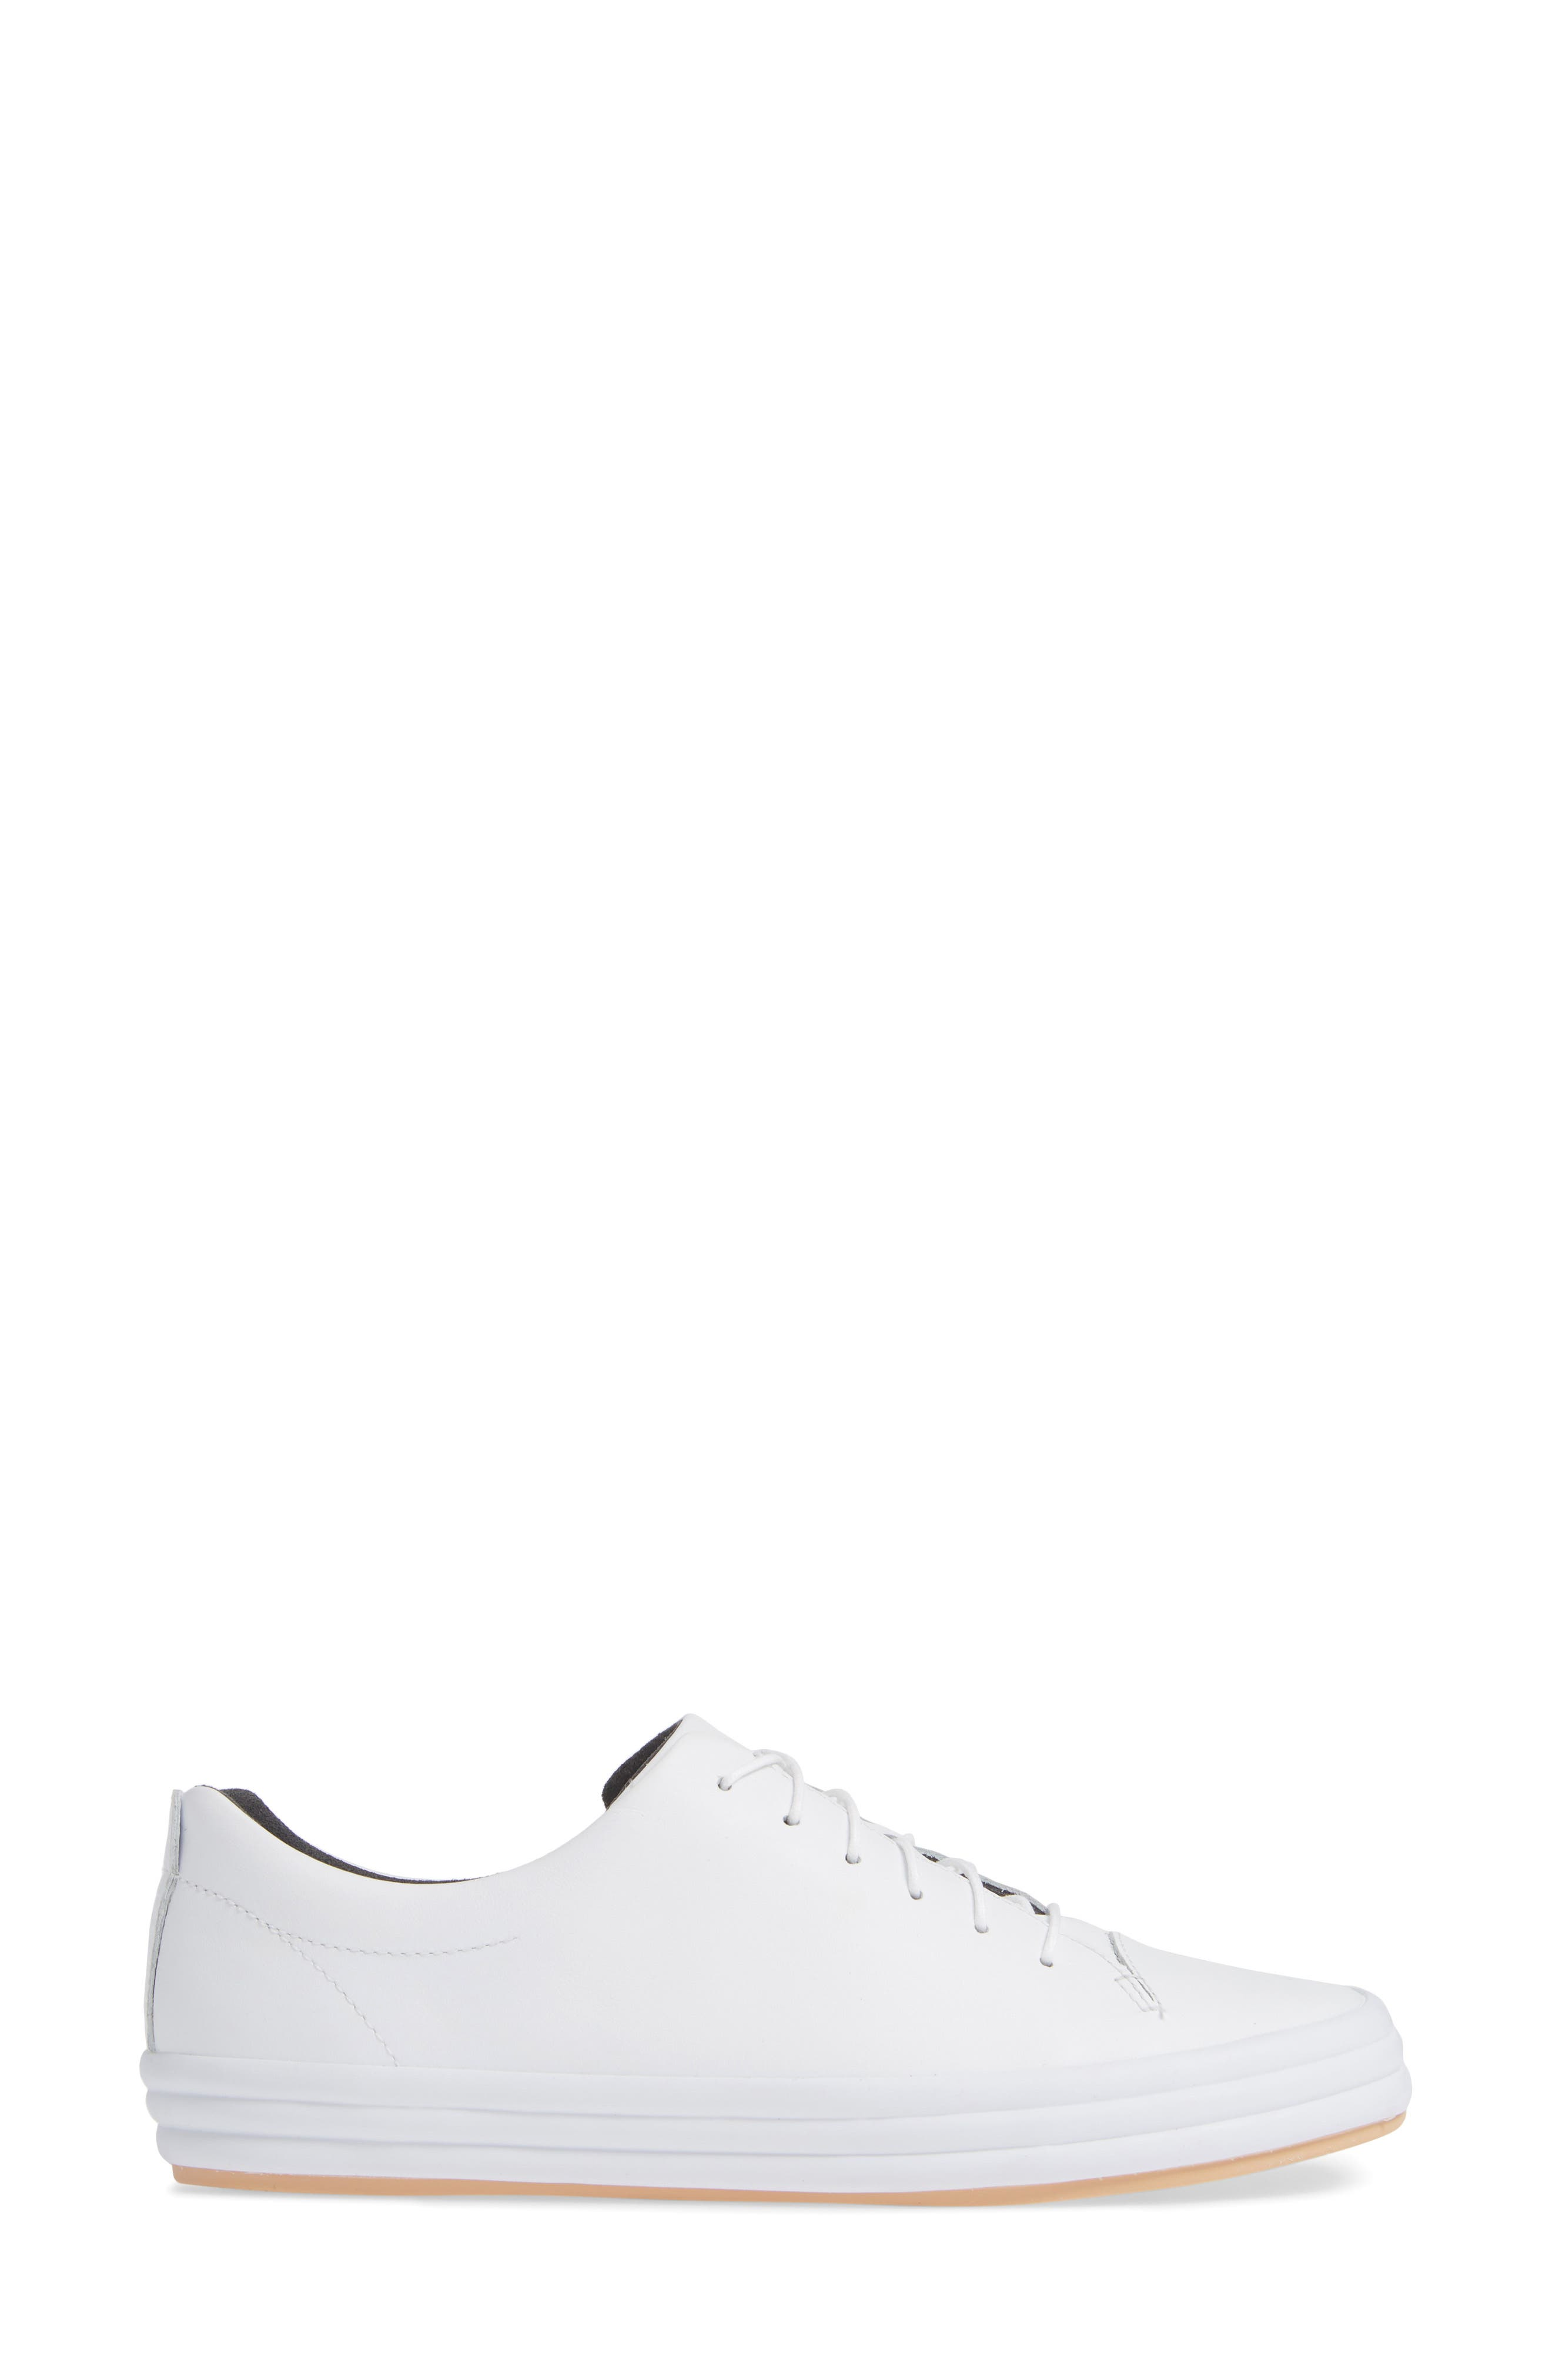 Hoops Sneaker,                             Alternate thumbnail 3, color,                             WHITE LEATHER